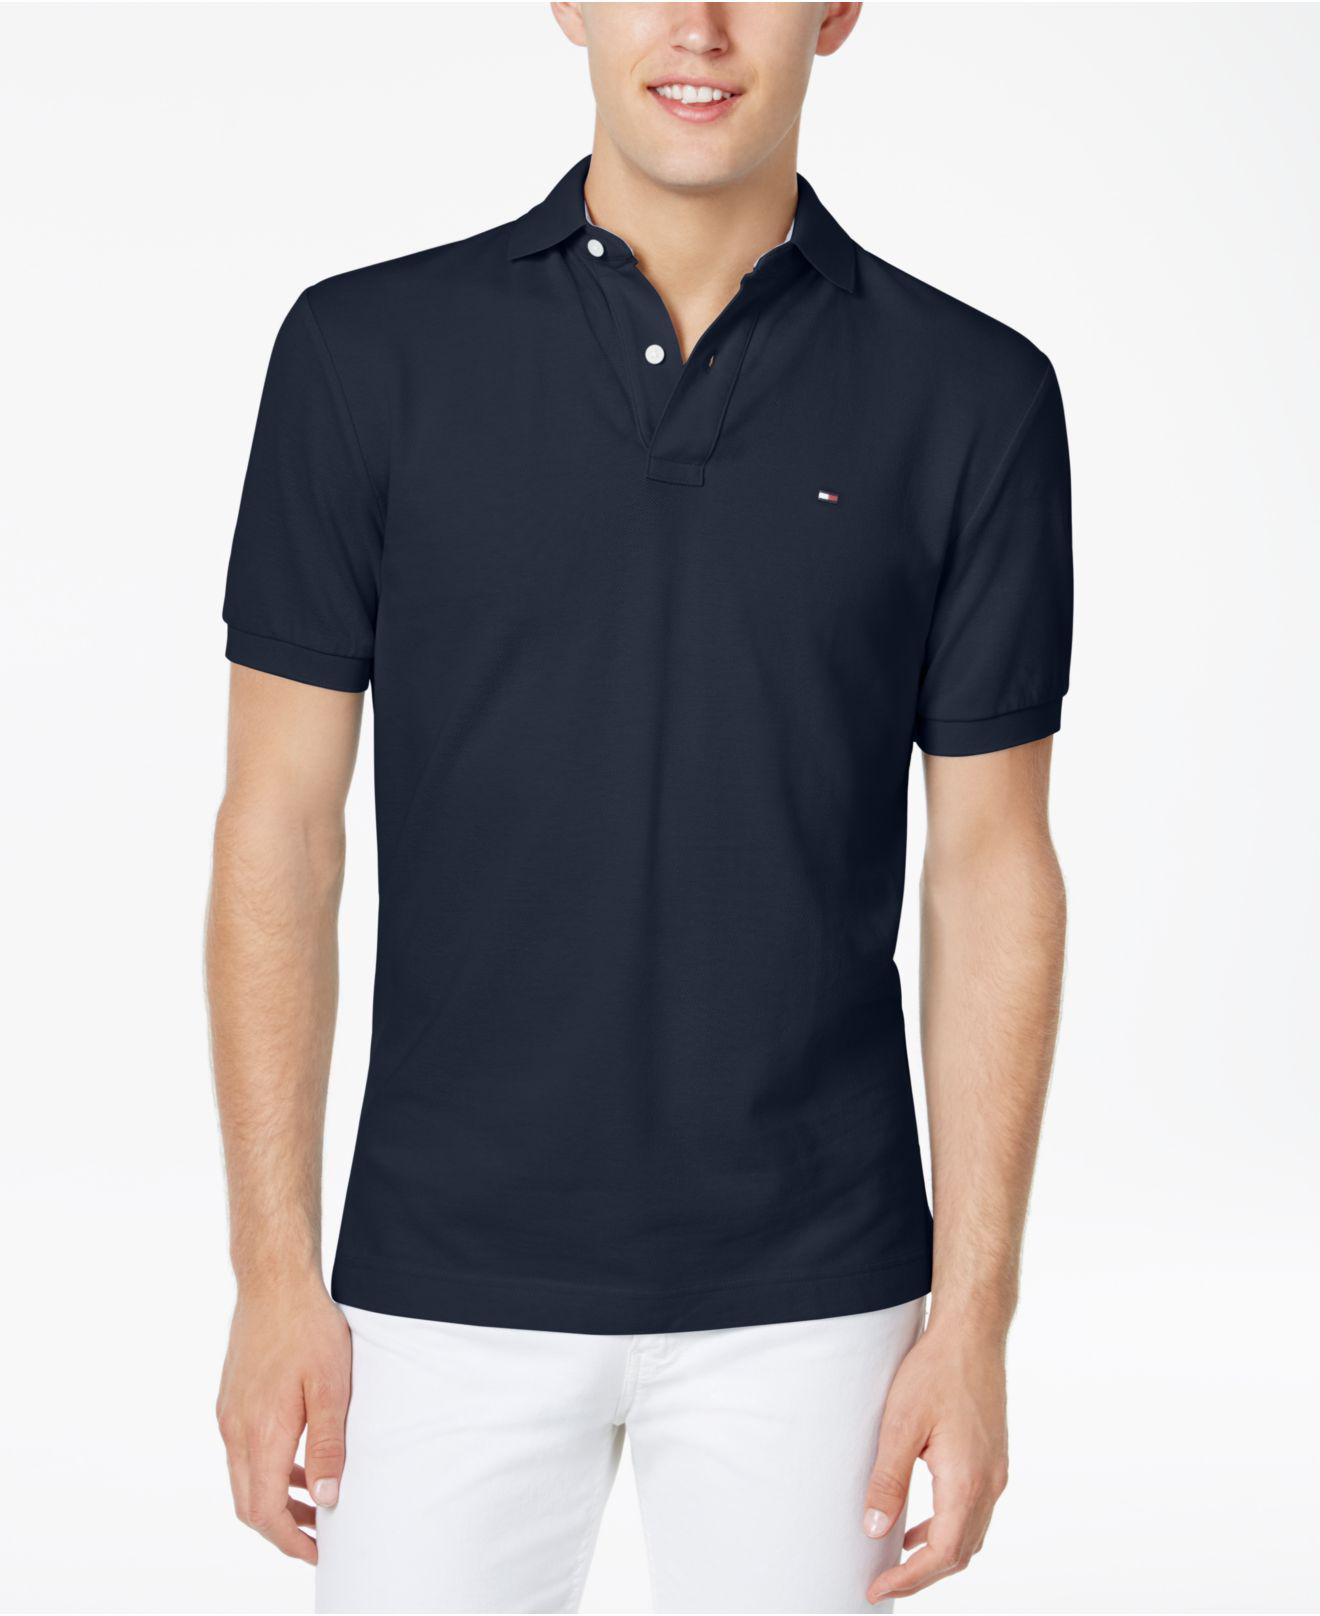 23988c9e1 Lyst - Tommy Hilfiger Big And Tall Solid Ivy Polo in Blue for Men ...